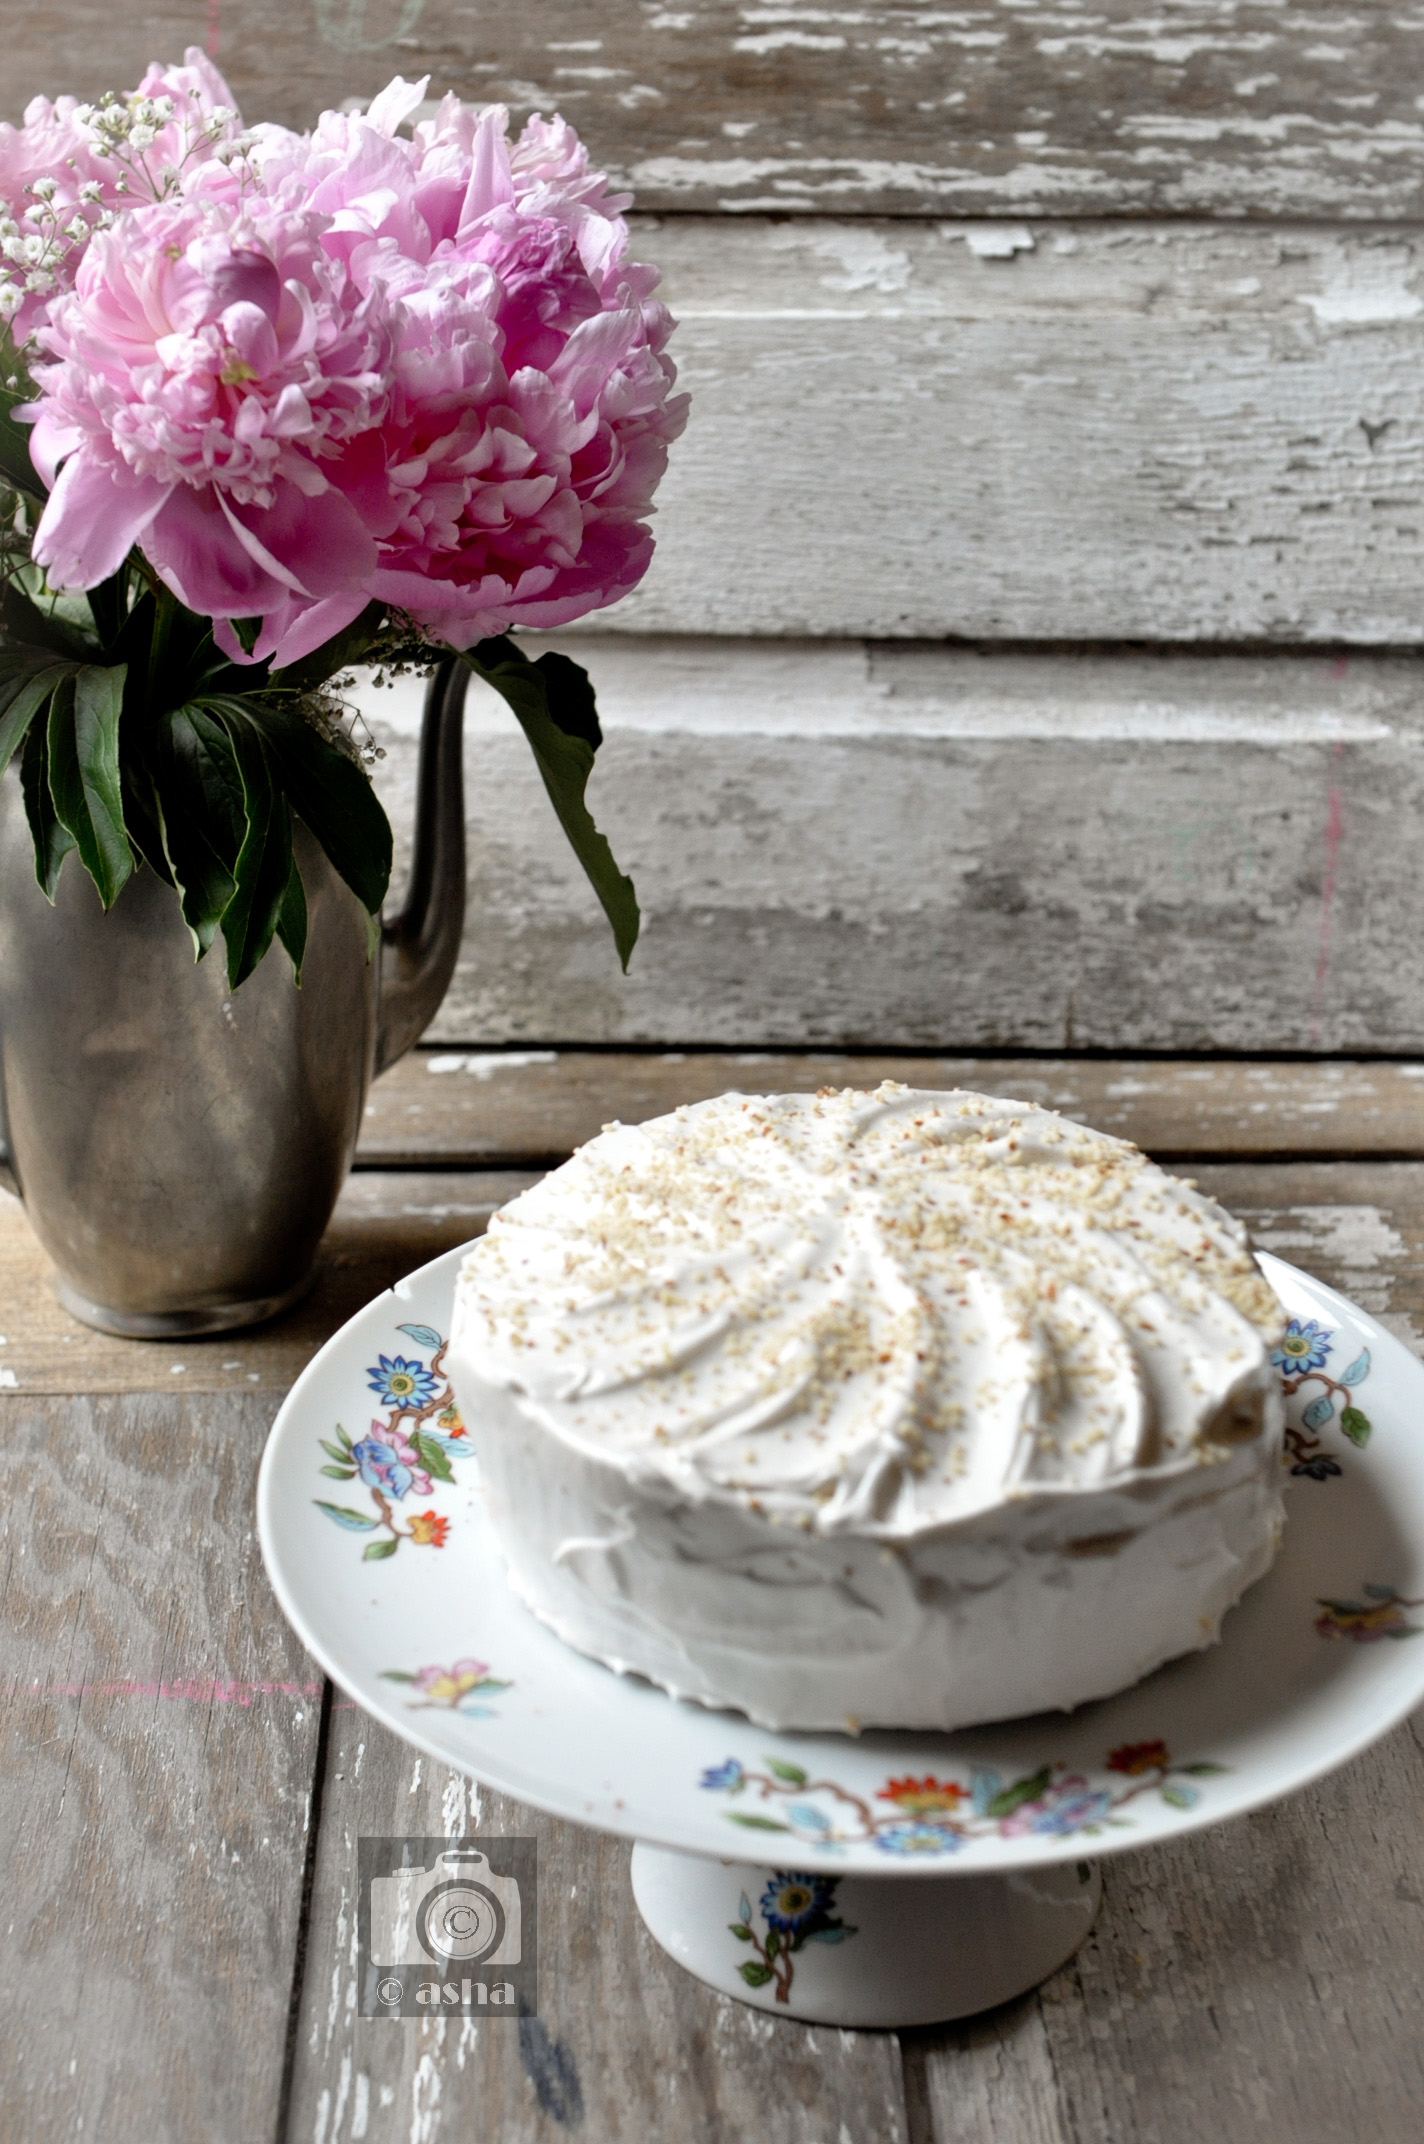 Banana & Almond Birthday Cake for recipe